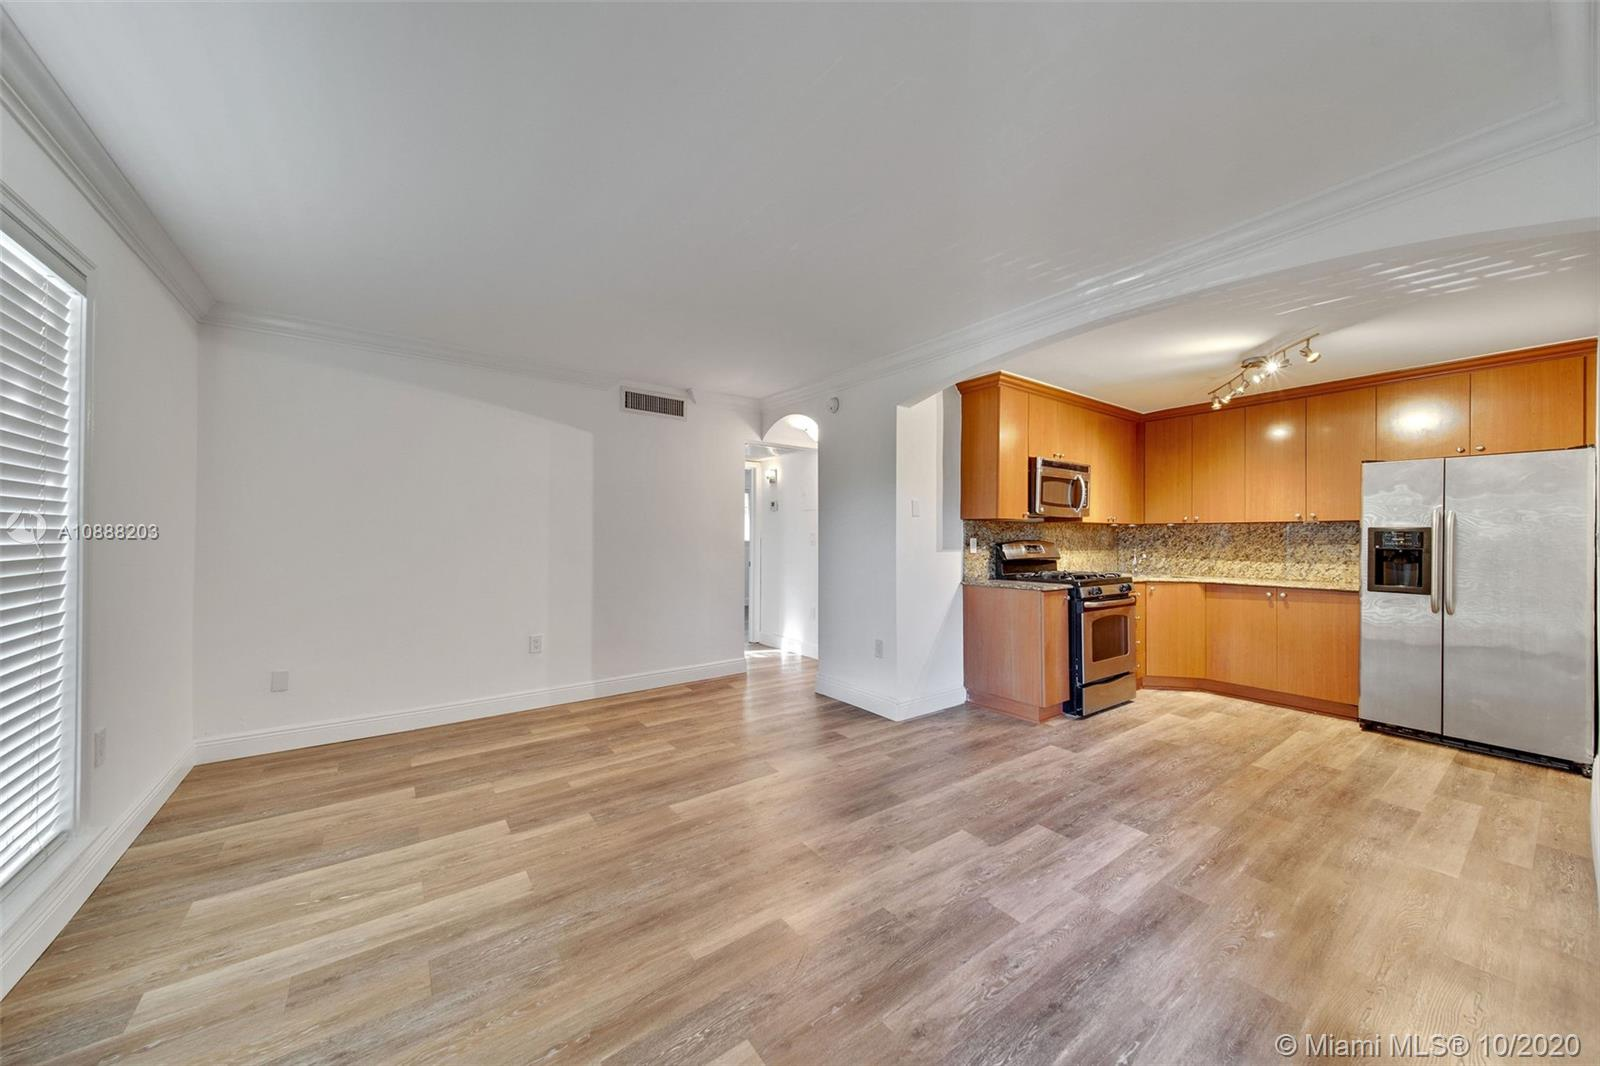 3245  Virginia St #56 For Sale A10888203, FL